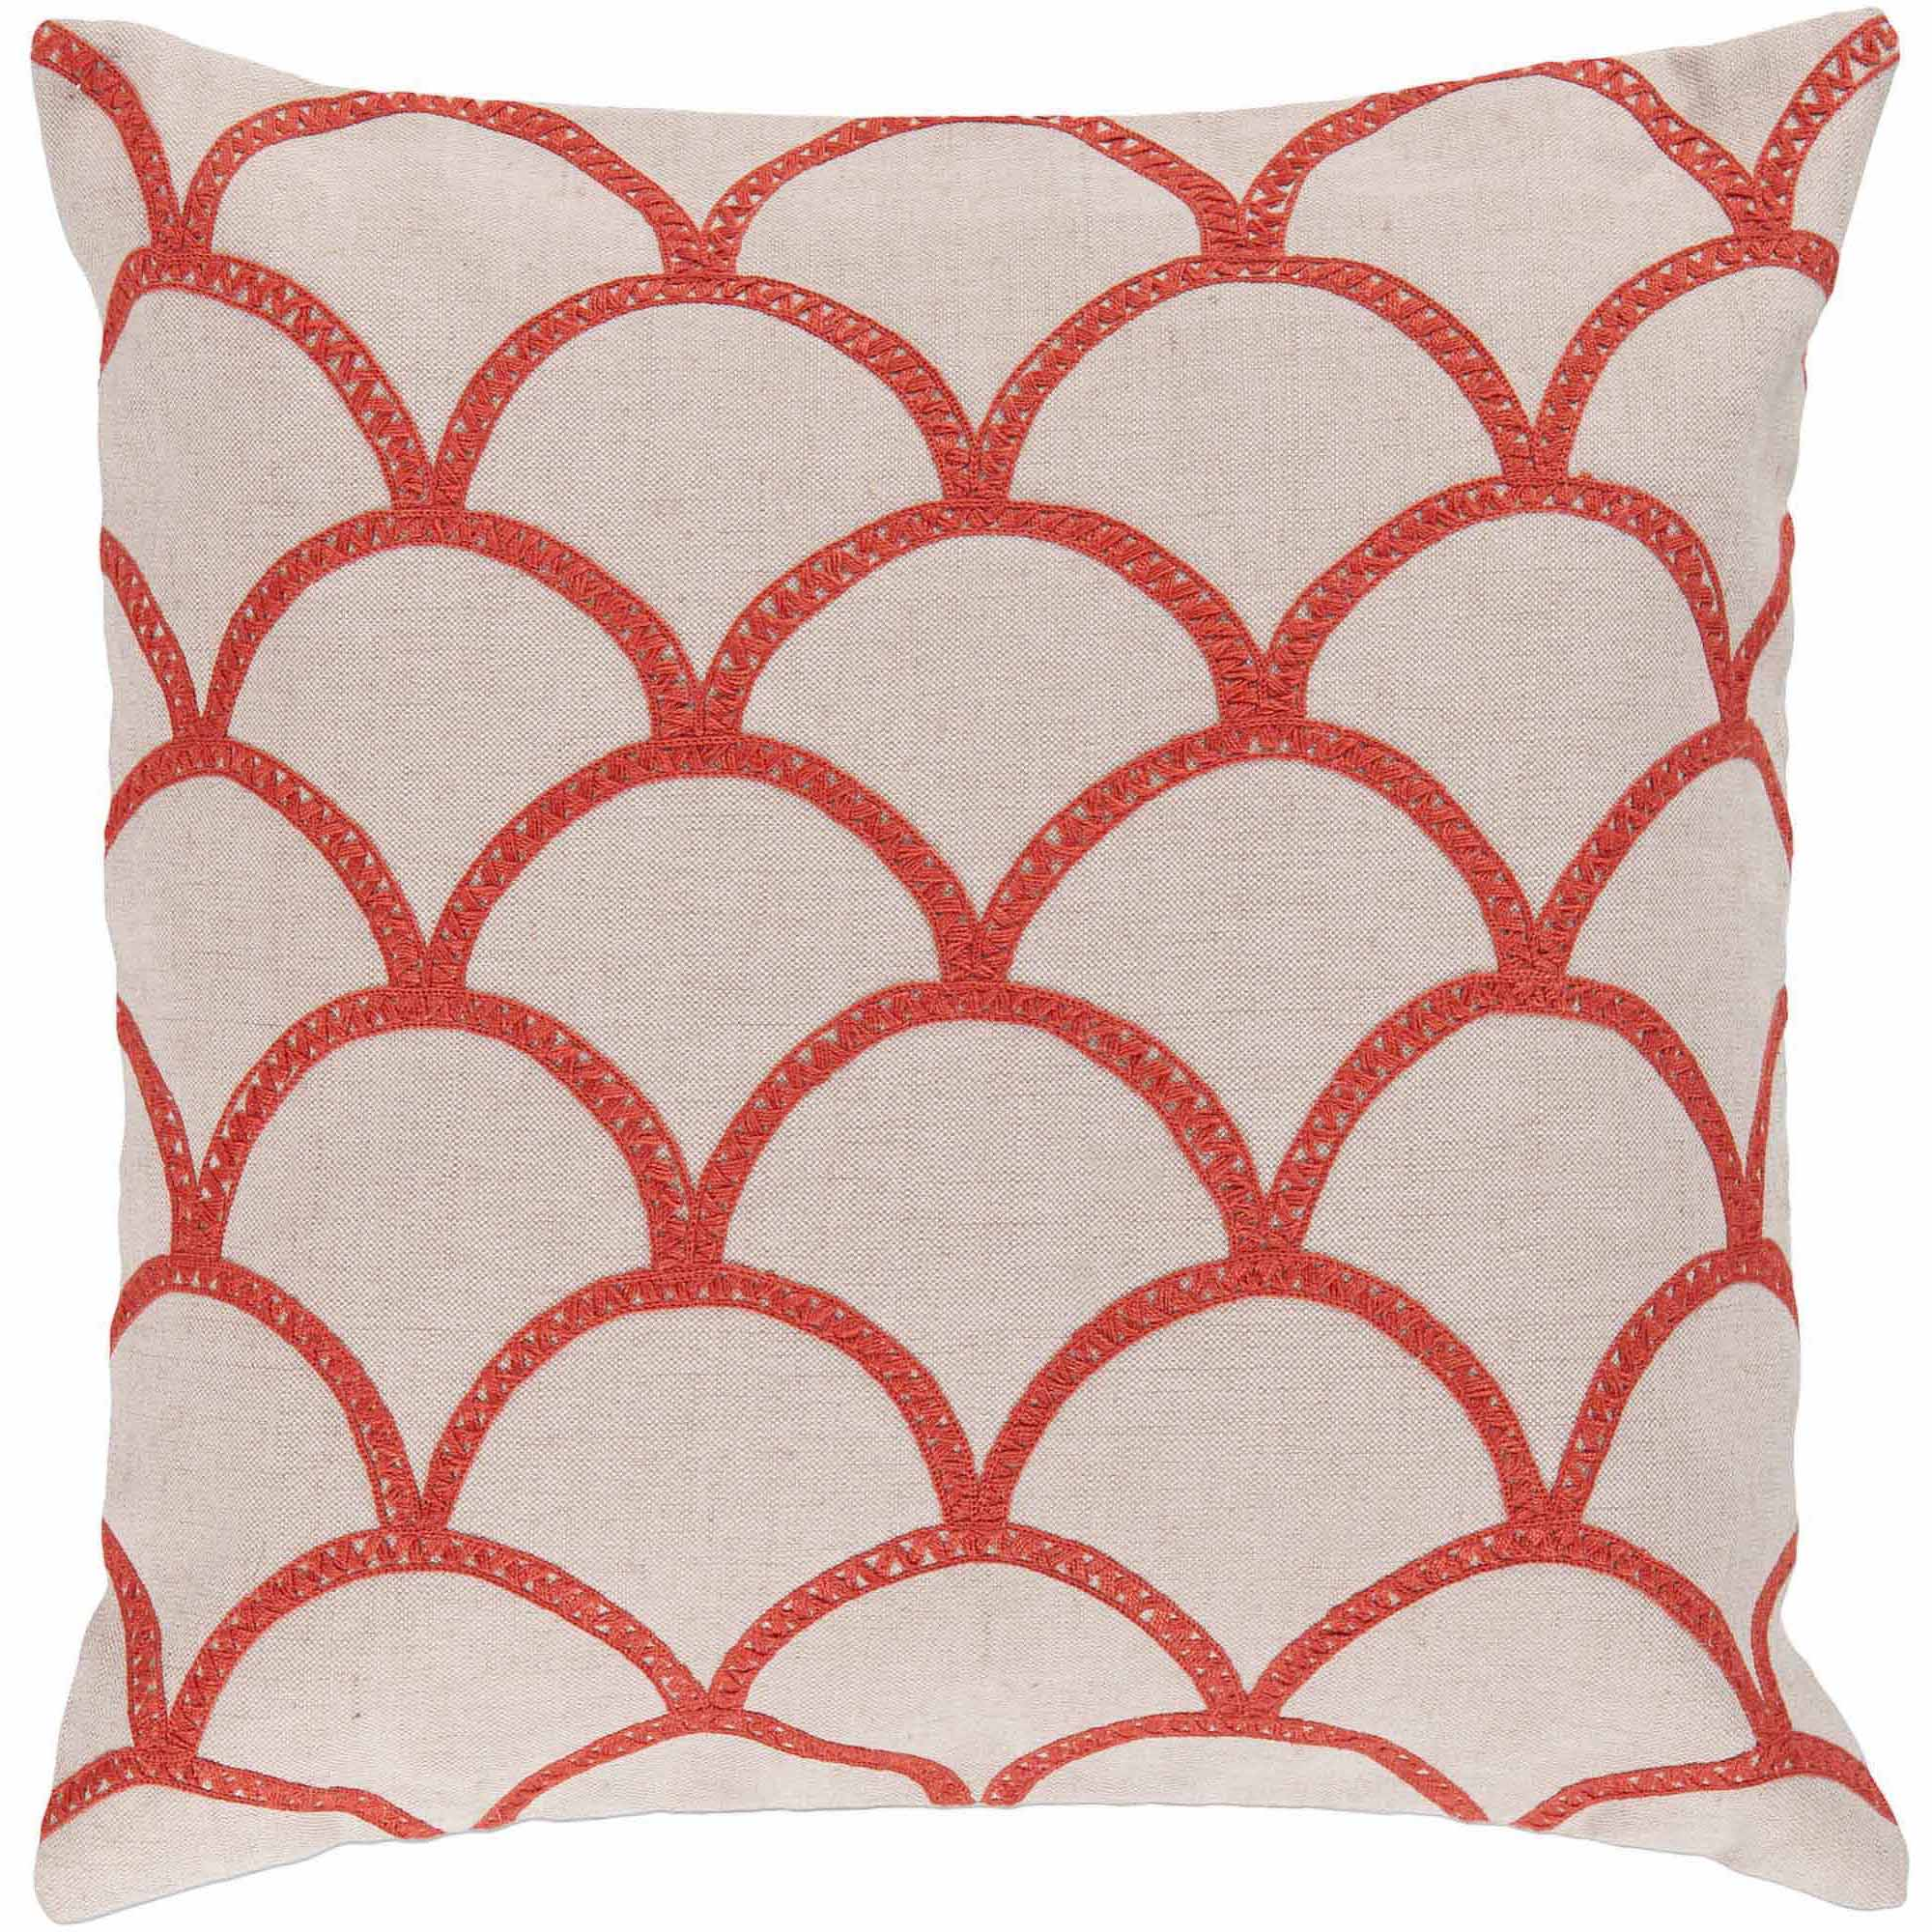 Art of Knot Syldan Hand Crafted Scalloped Cotton Decorative Pillow with Poly Filler, Poppy